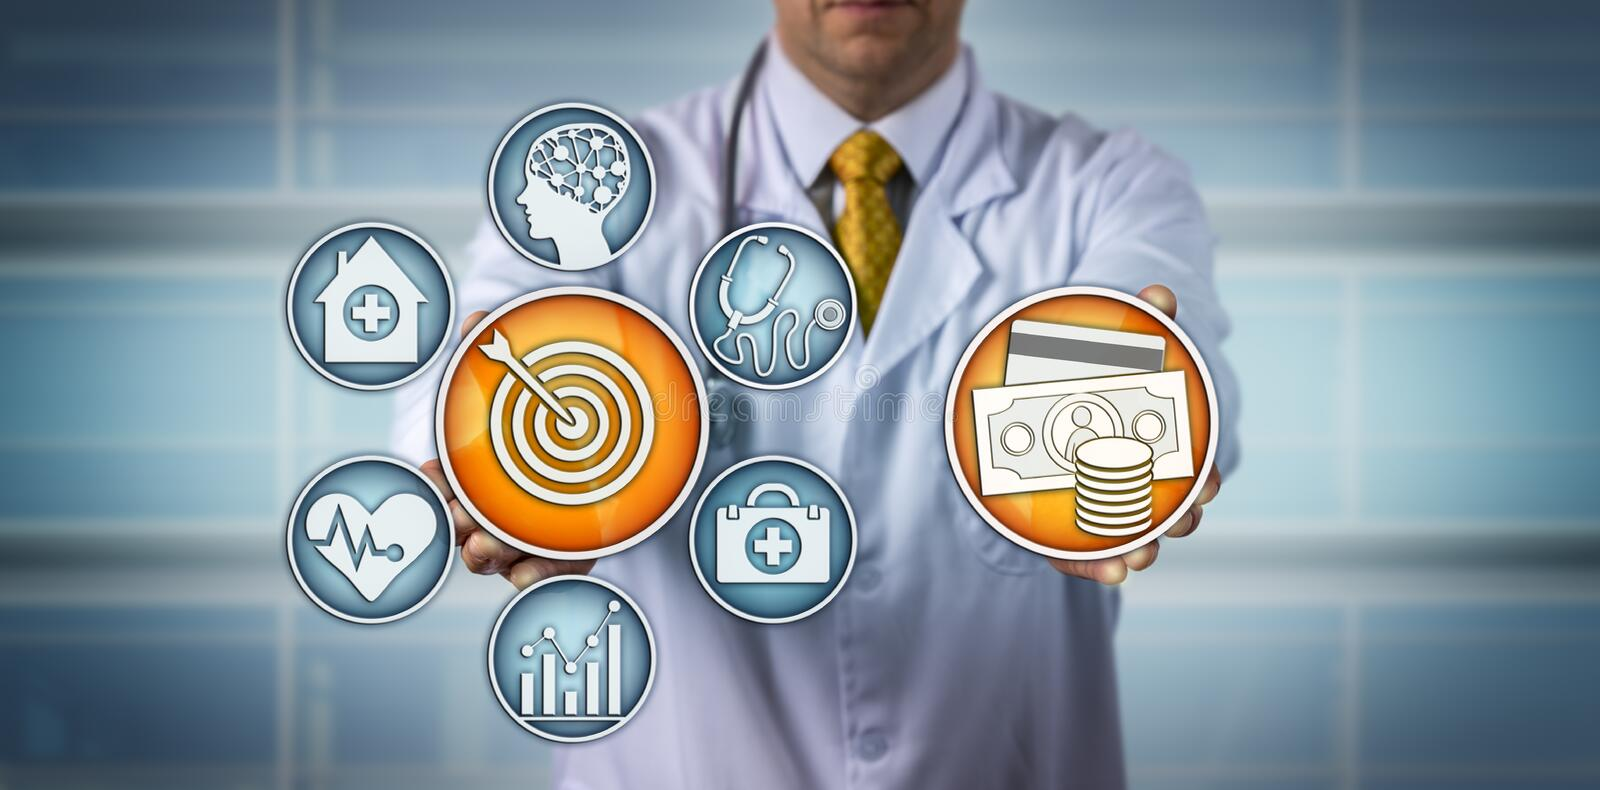 Doctor Presenting Value-Based Healthcare Model royalty free stock photography